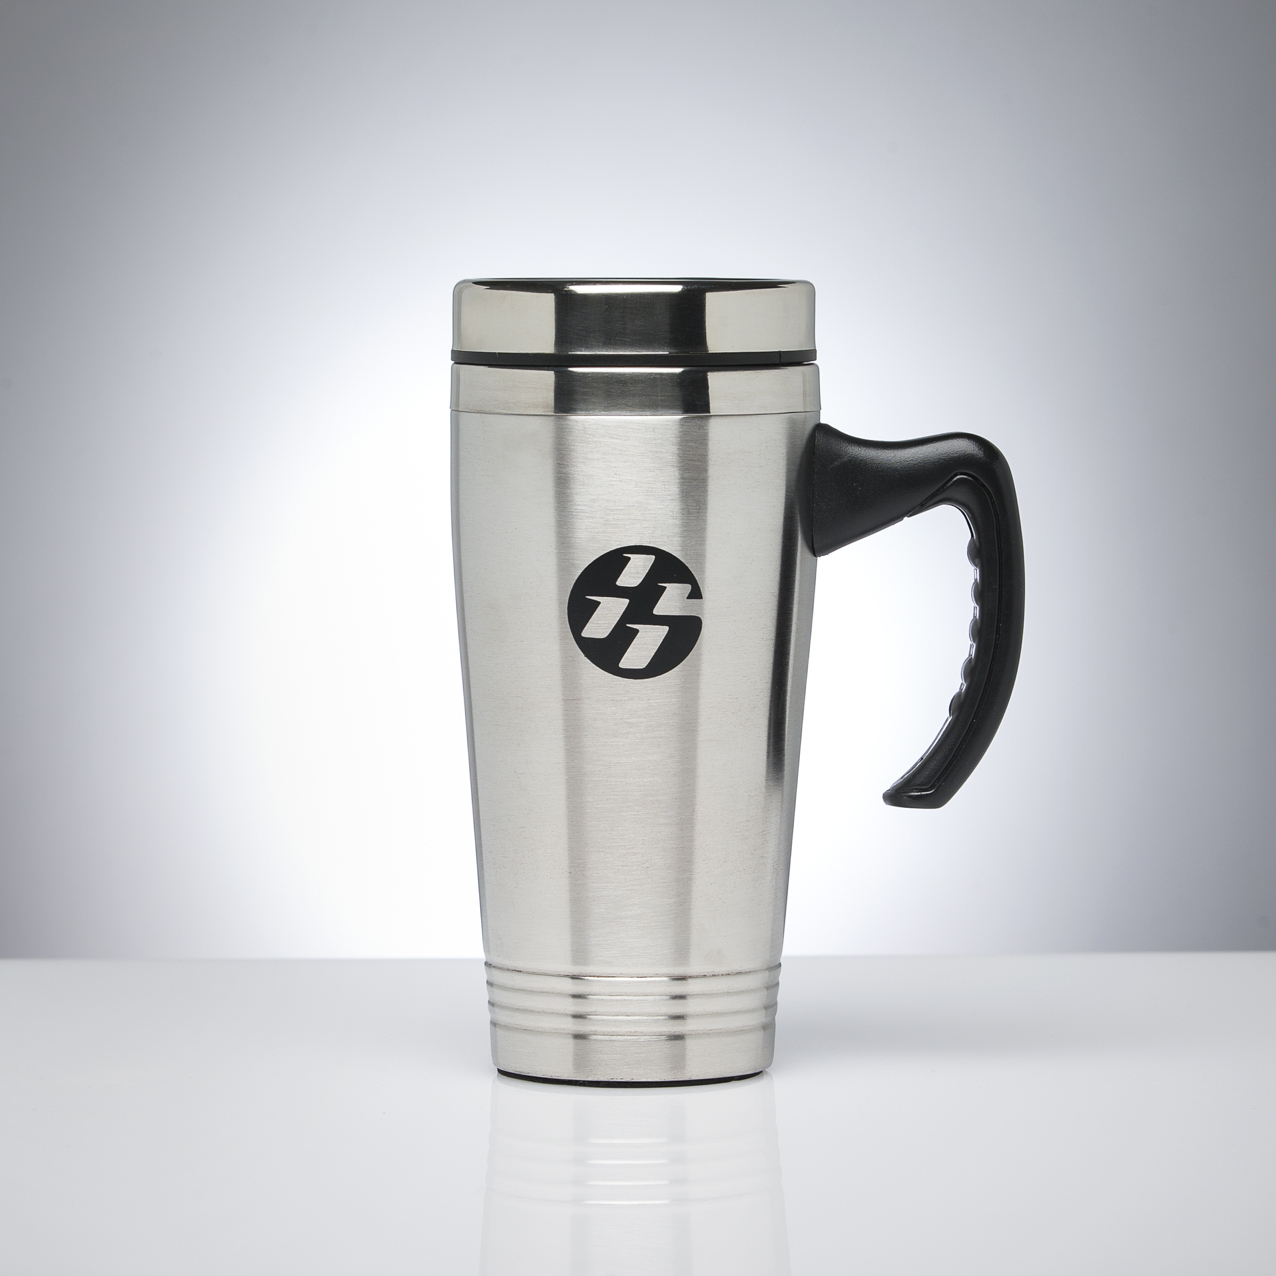 Stainless Steel Travel Mug Type